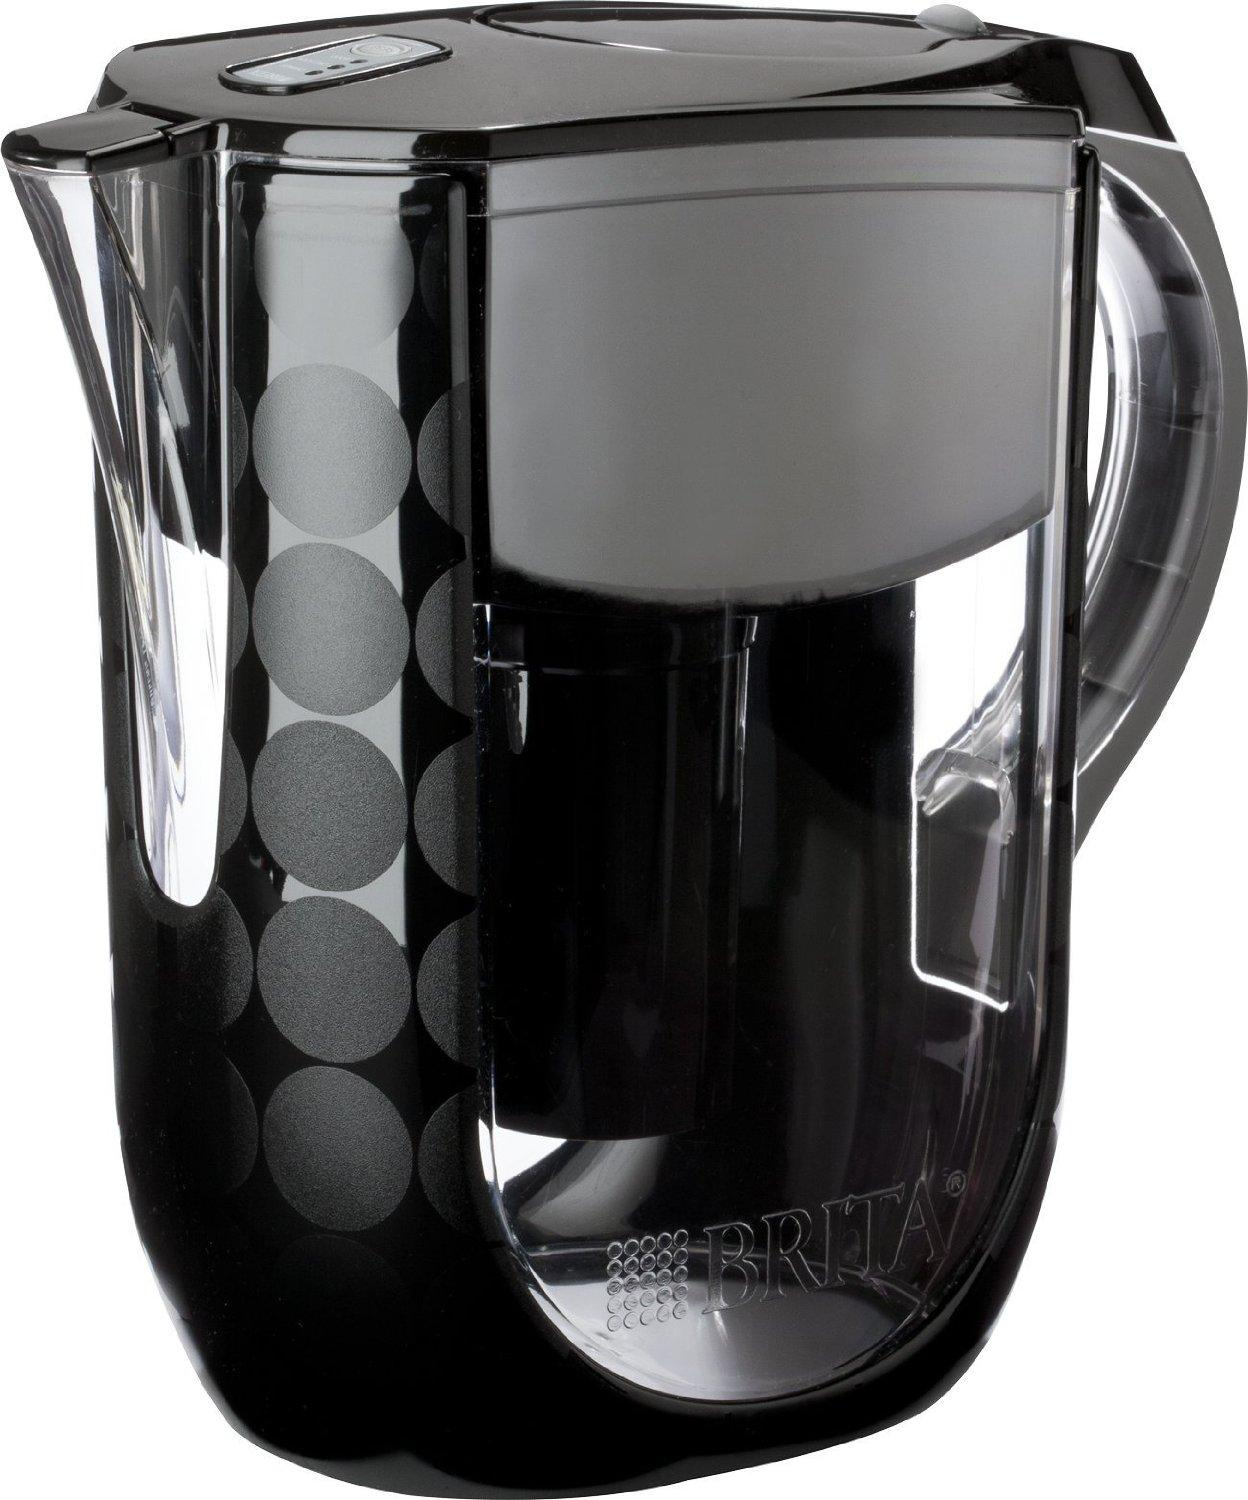 $23.86 Brita Grand Water Filter Pitcher, Black Bubbles, 10 Cup